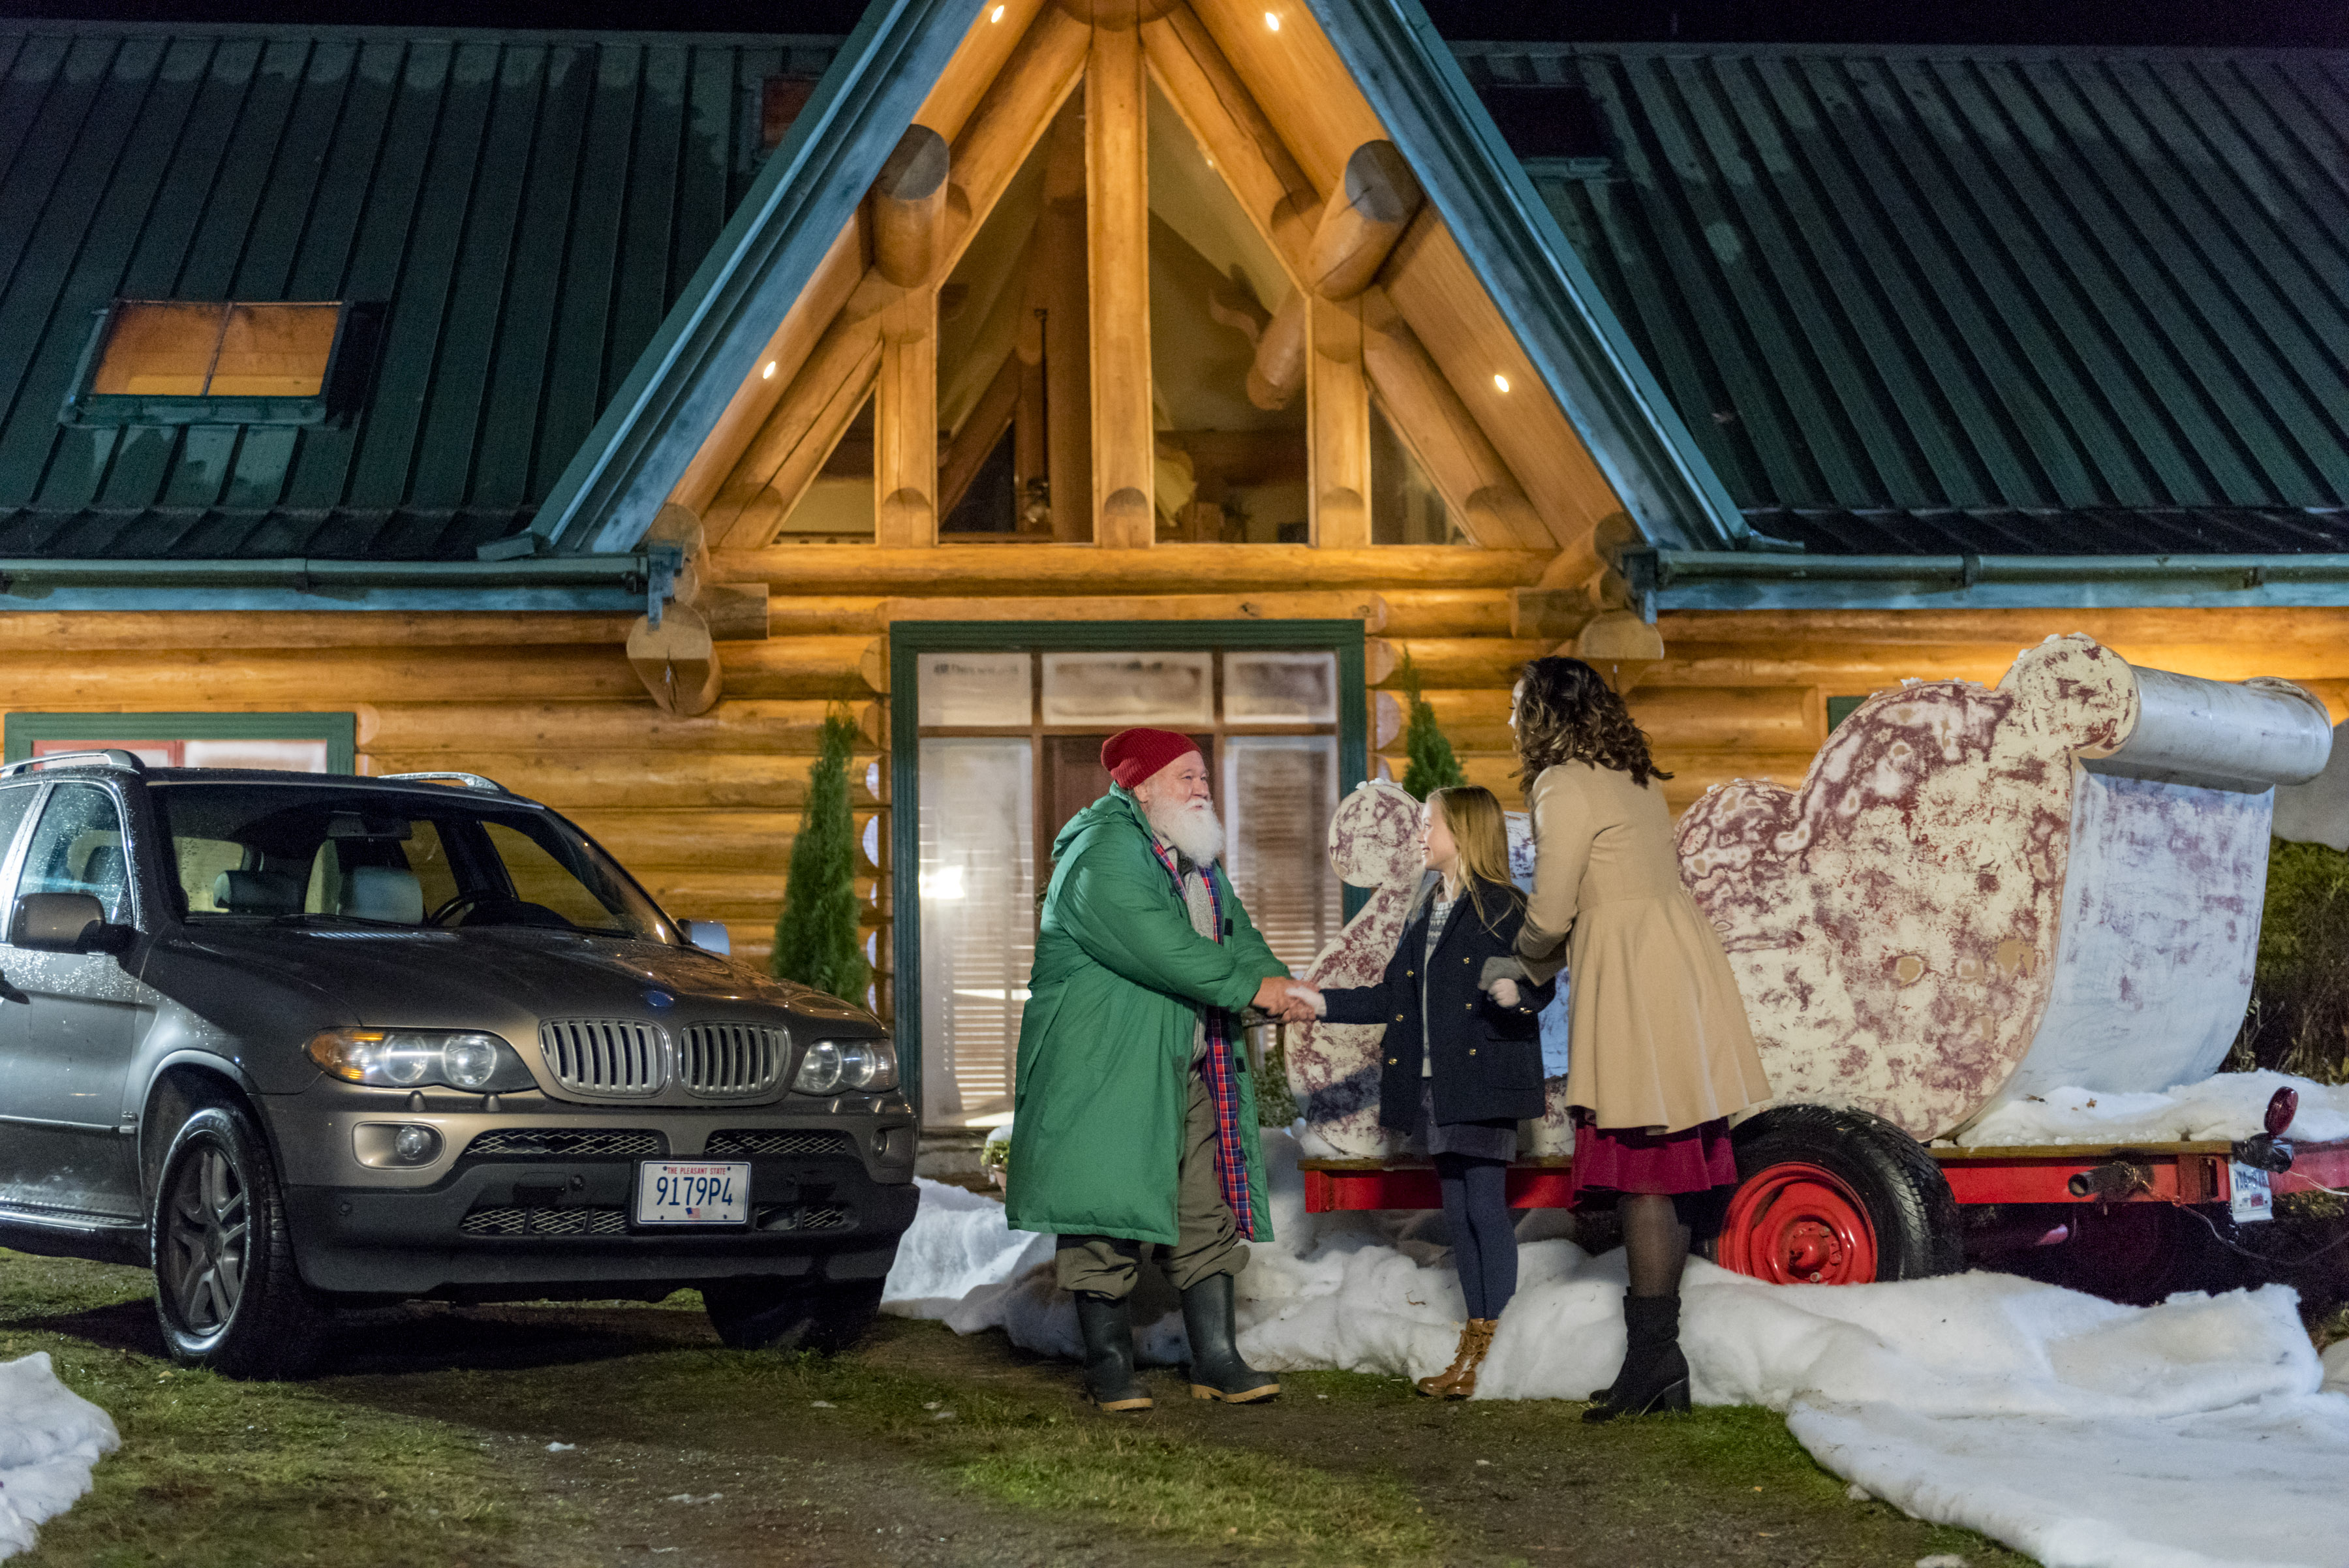 Photos from Sleigh Bells Ring - 8